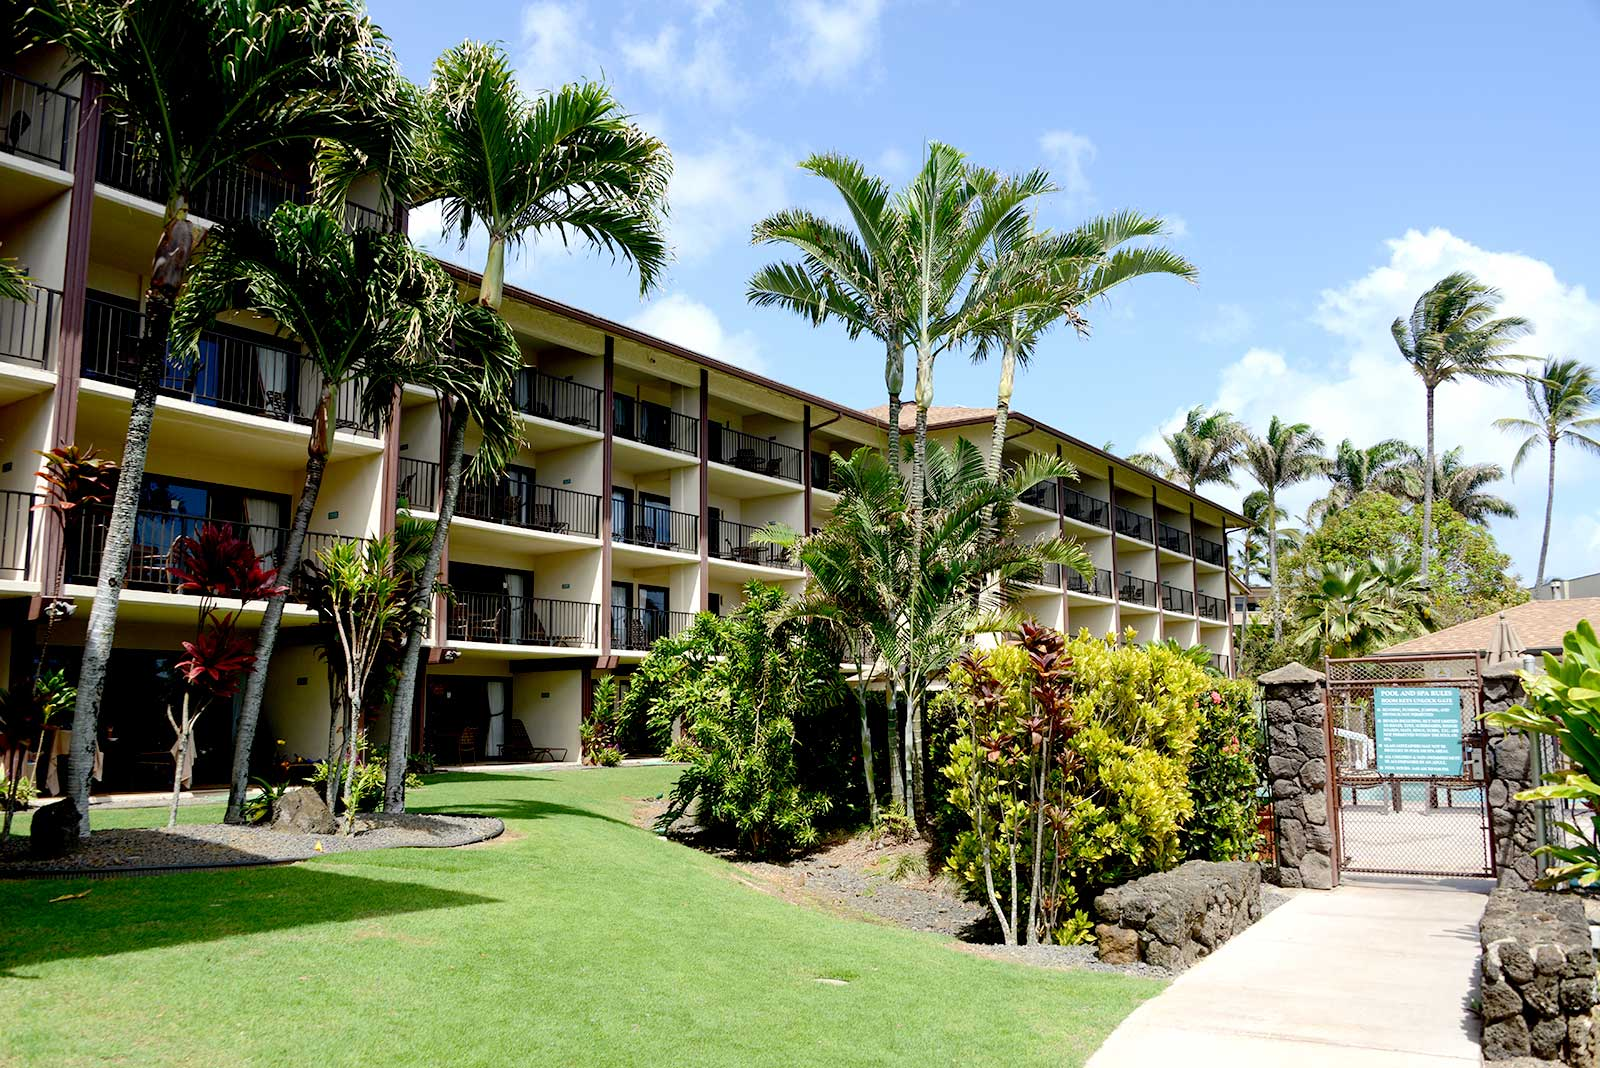 lawai singles Relax with plush grand hyatt beds®, a coffeemaker with hawaiian coffee and spacious marble bathrooms in our kauai accommodations book now  the world of hyatt account system is offline for maintenance we will be back shortly to book an award or.